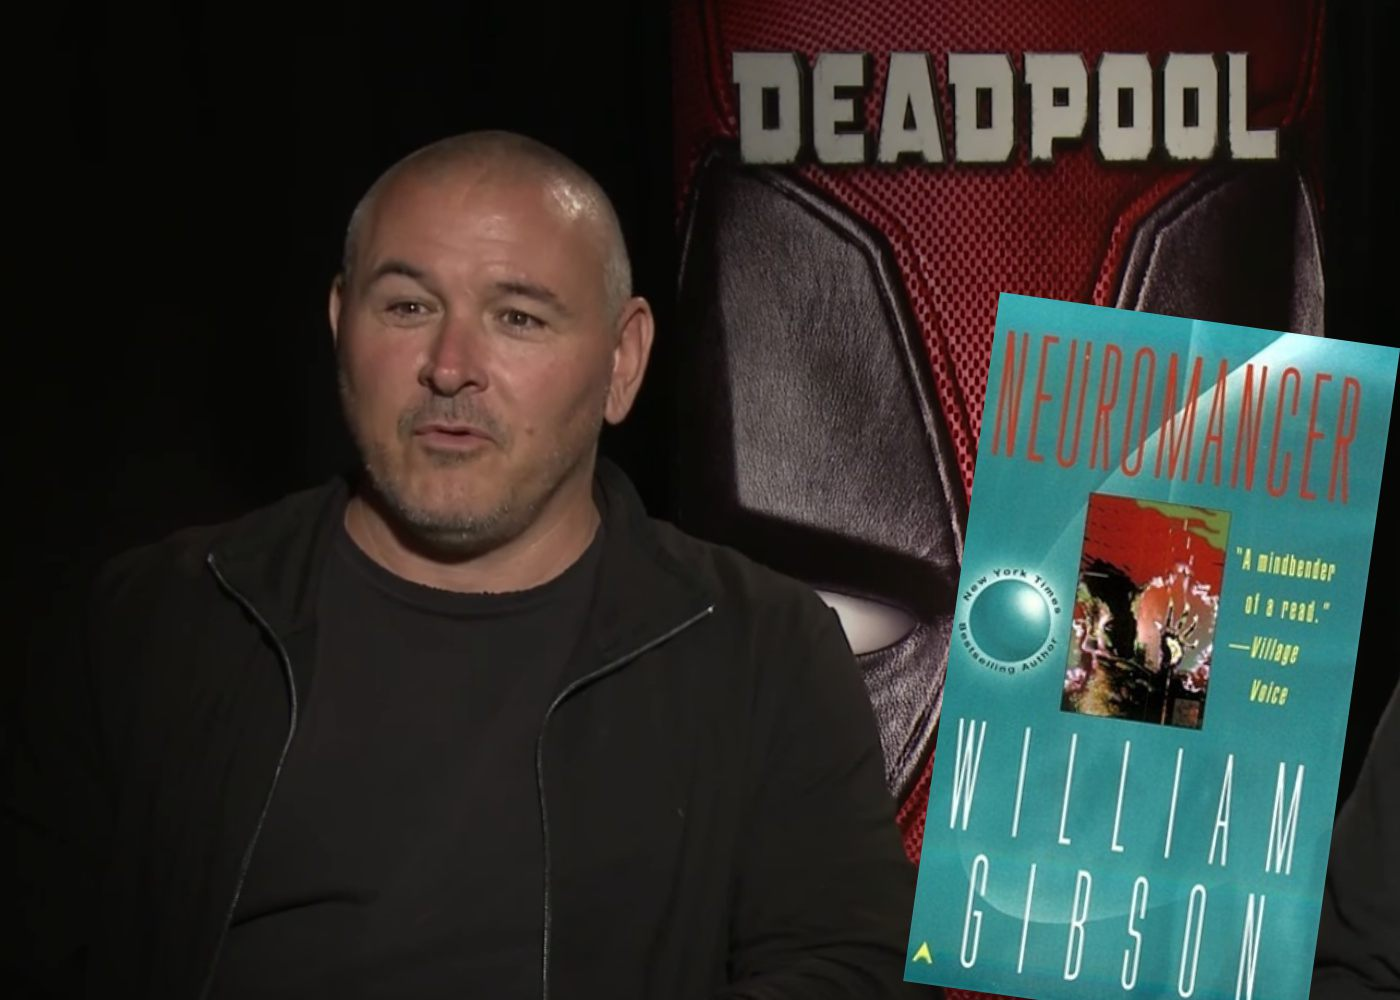 Deadpool Director Tim Miller to Helm Neuromancer Film